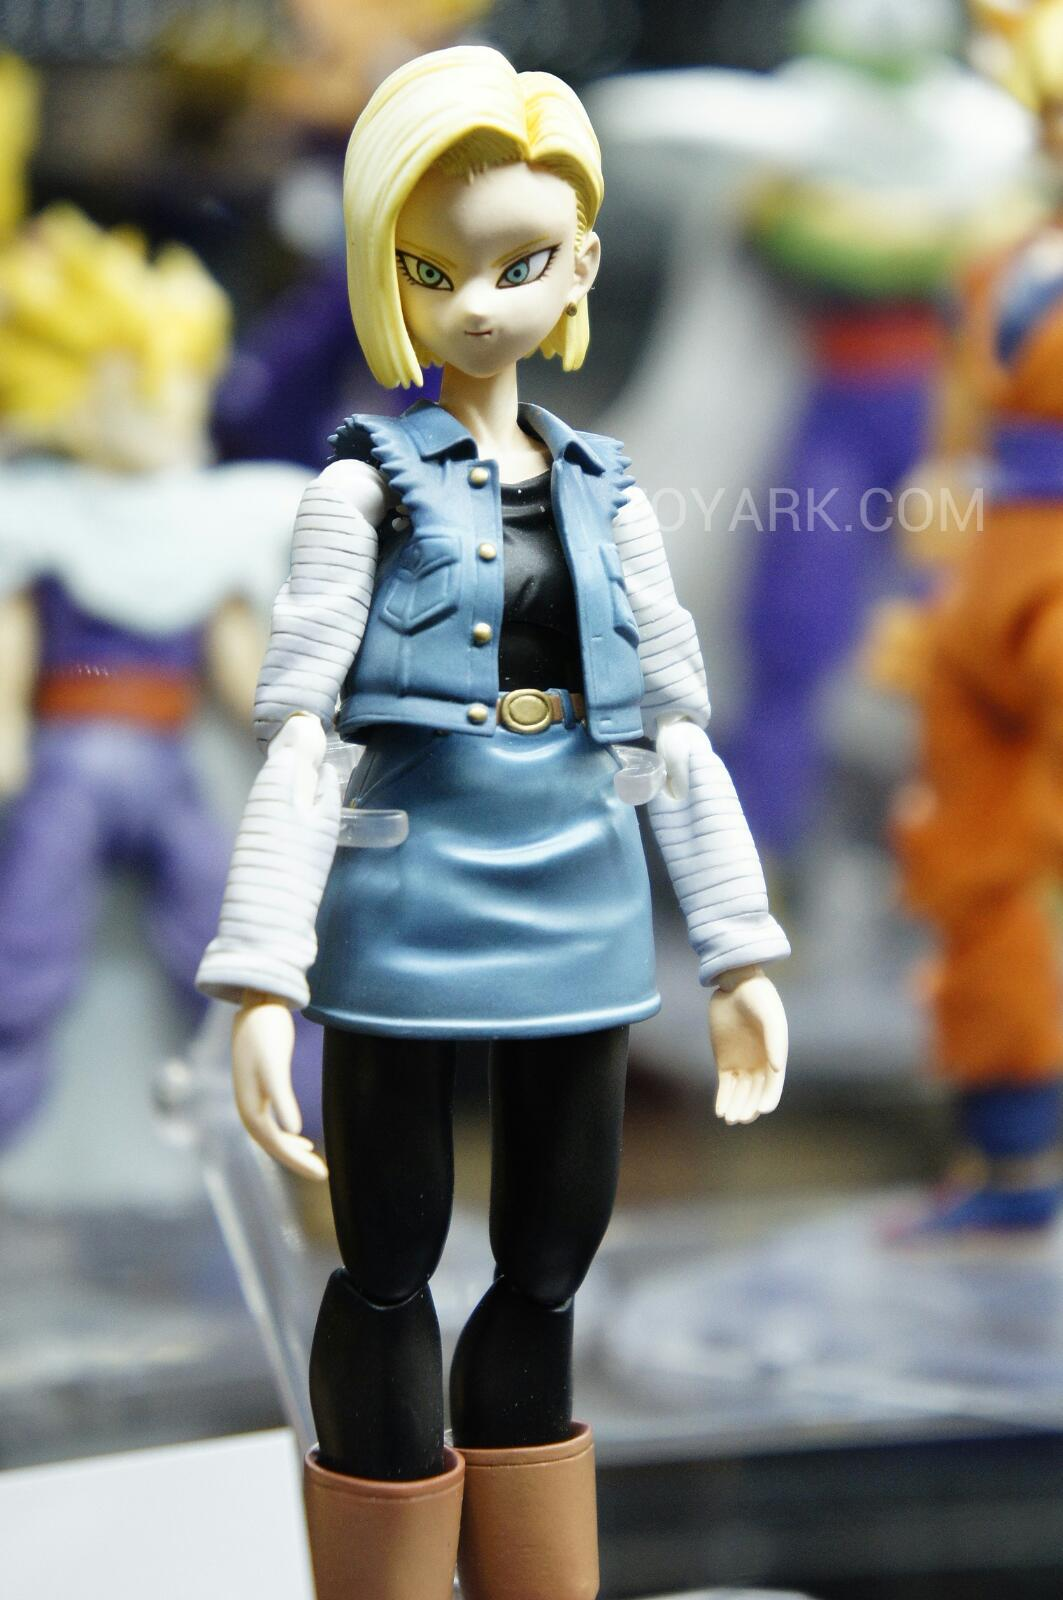 Remote Control Ball >> SDCC 2012: New Dragonball Z S.H. Figuarts, Android 18, Krillin And More Revealed! – YBMW